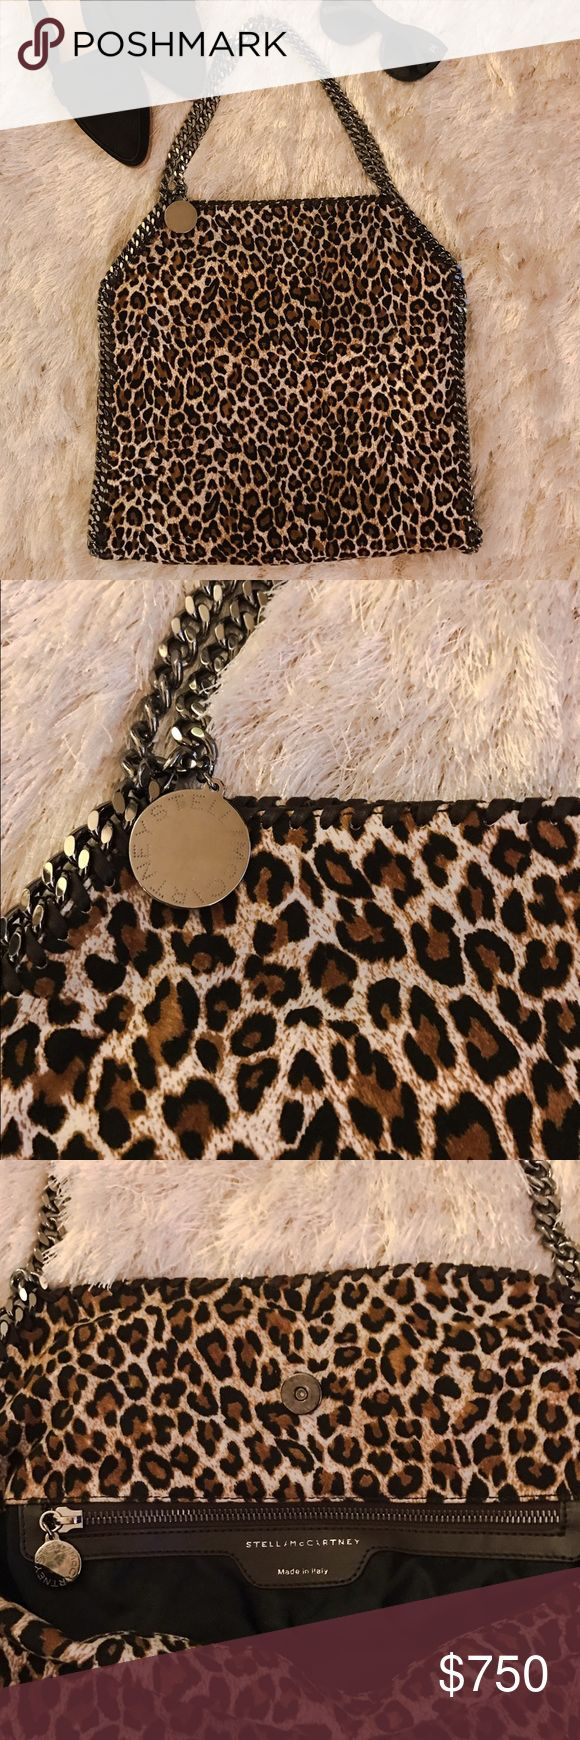 🔥sale🔥 STELLA MCCARTNEY Falabella Eco Leo Tote Authentic Falabella small tote in leopard with silver hardware. Pre-loved and in great condition. Minor scuffs on hardware. Made of  88% polyester & 12% polyurethane. Original dust bag included. This small tote holds a lot, perfect for every day use without being too big and bulky. Decided to sell because I just got the new Falabella with fringe 😍 Stella McCartney Bags Totes